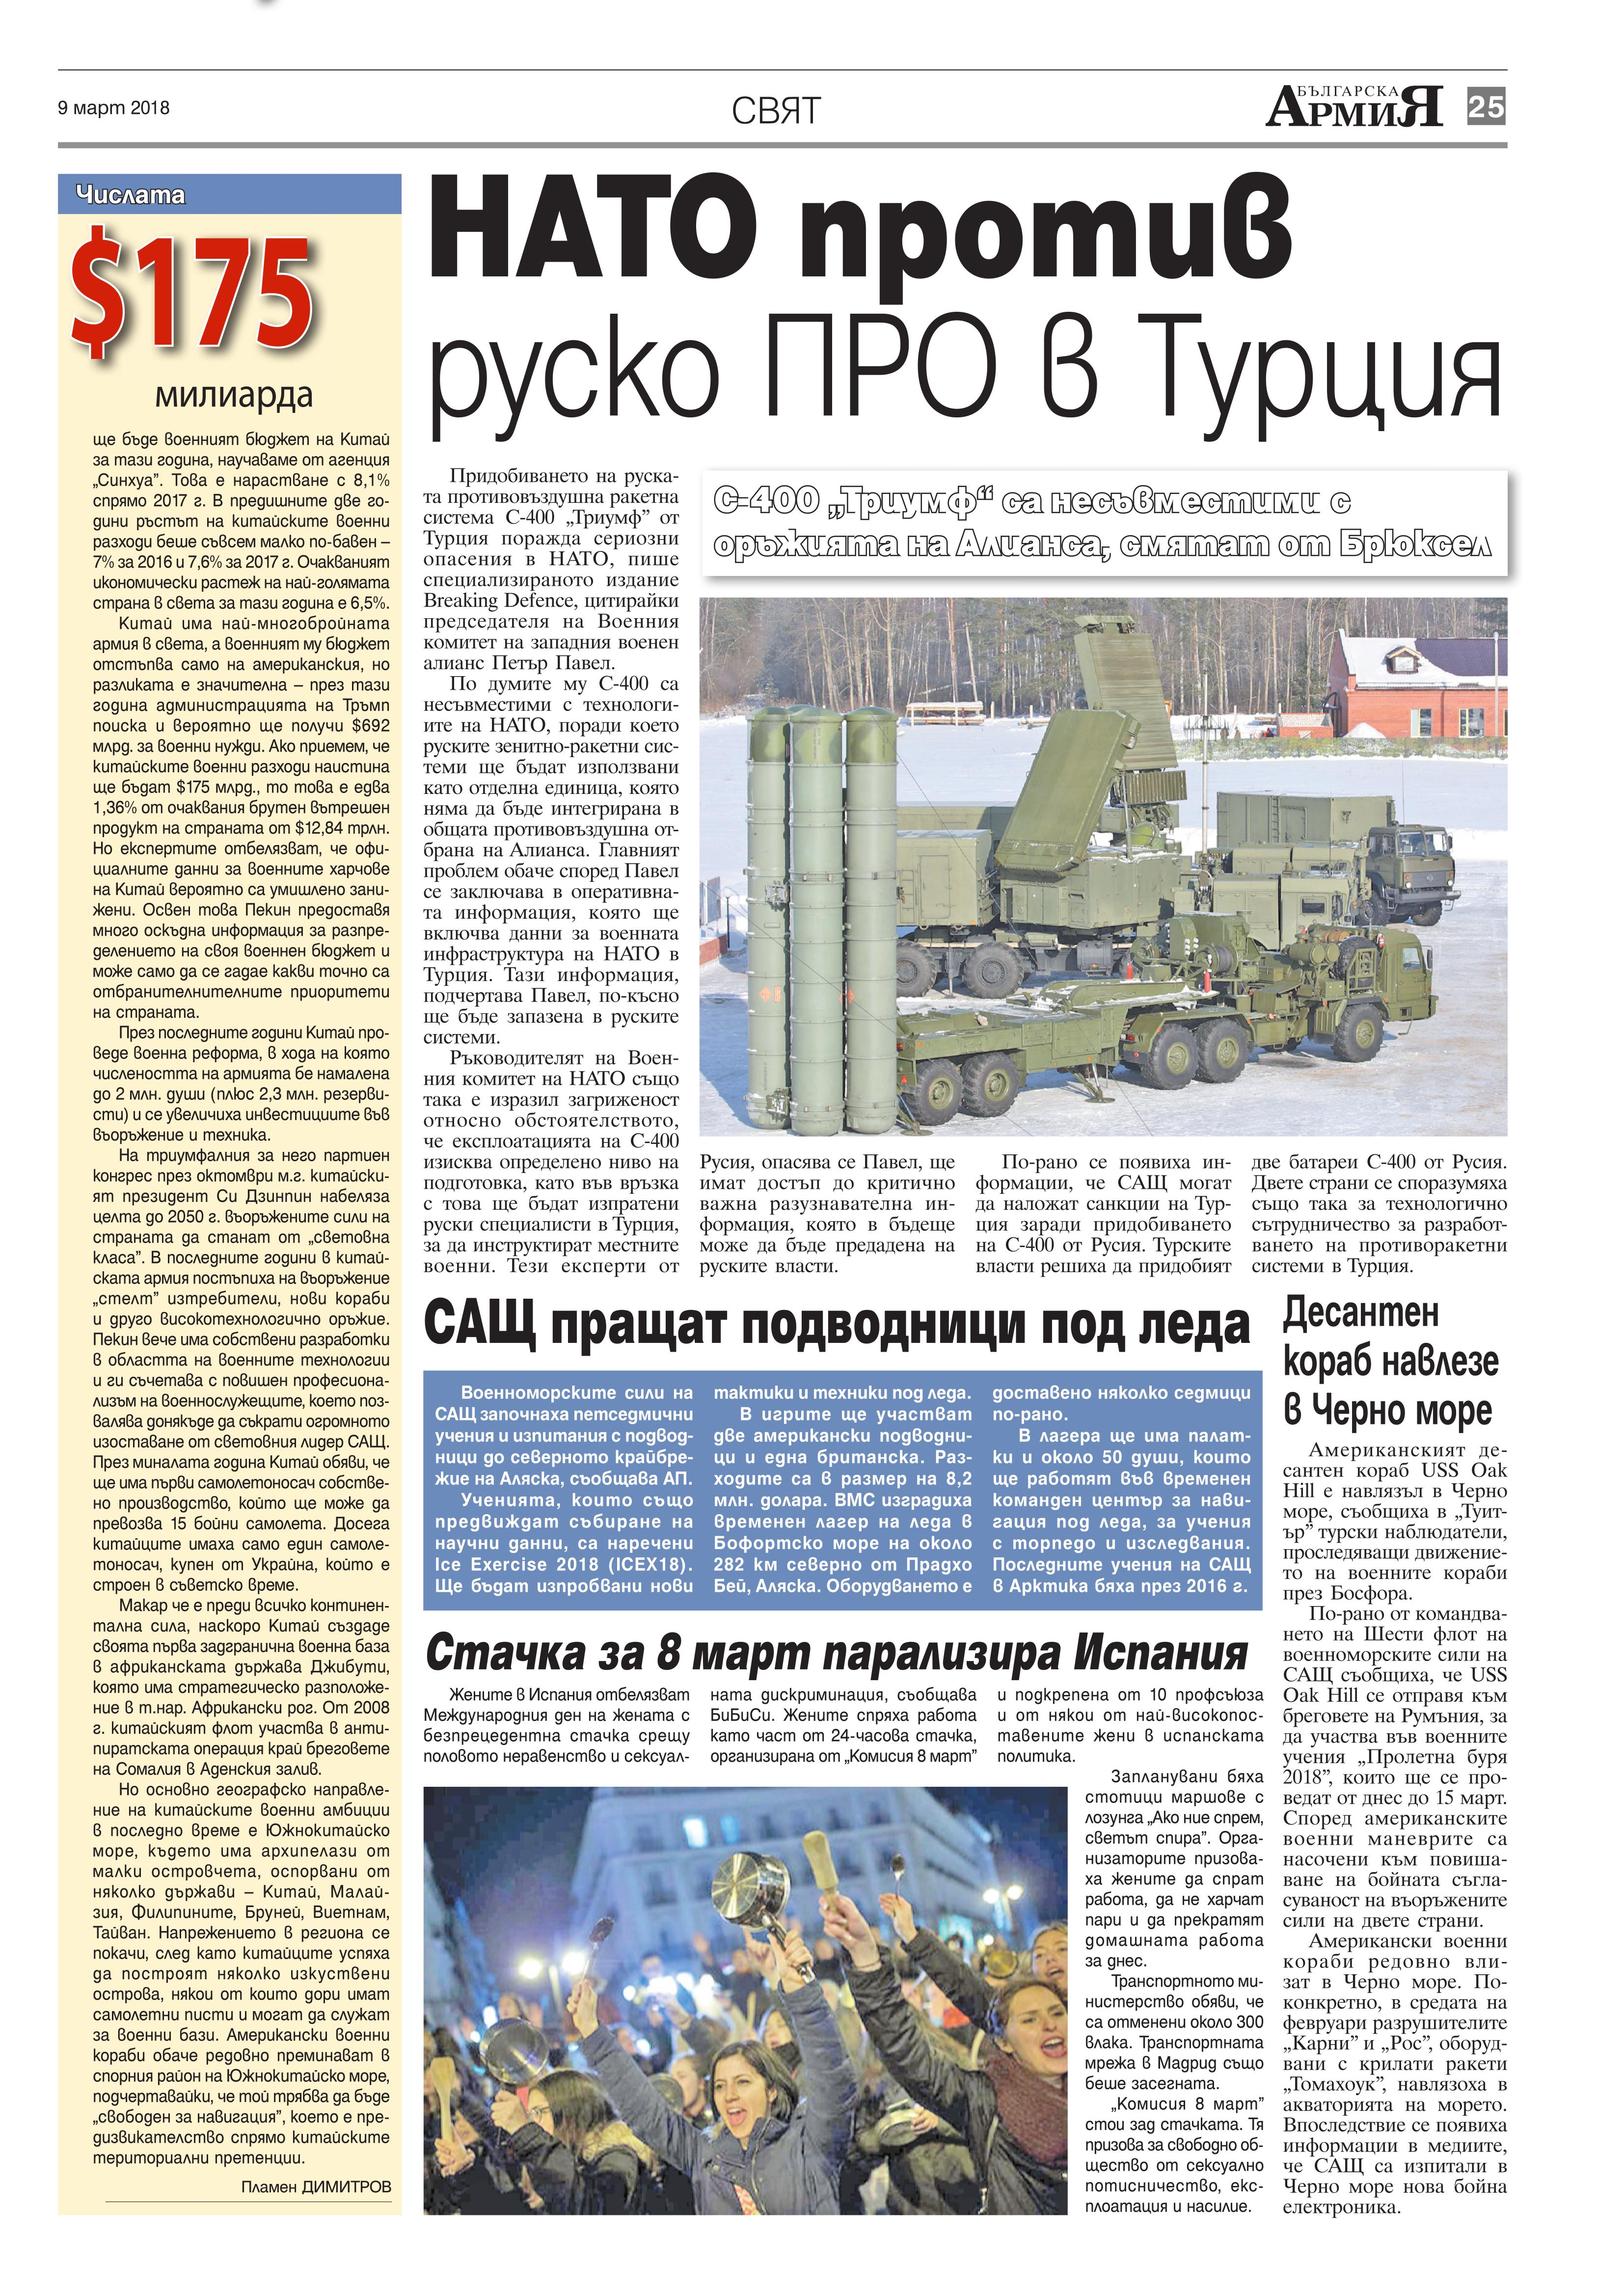 https://armymedia.bg/wp-content/uploads/2015/06/25.page1_-37.jpg